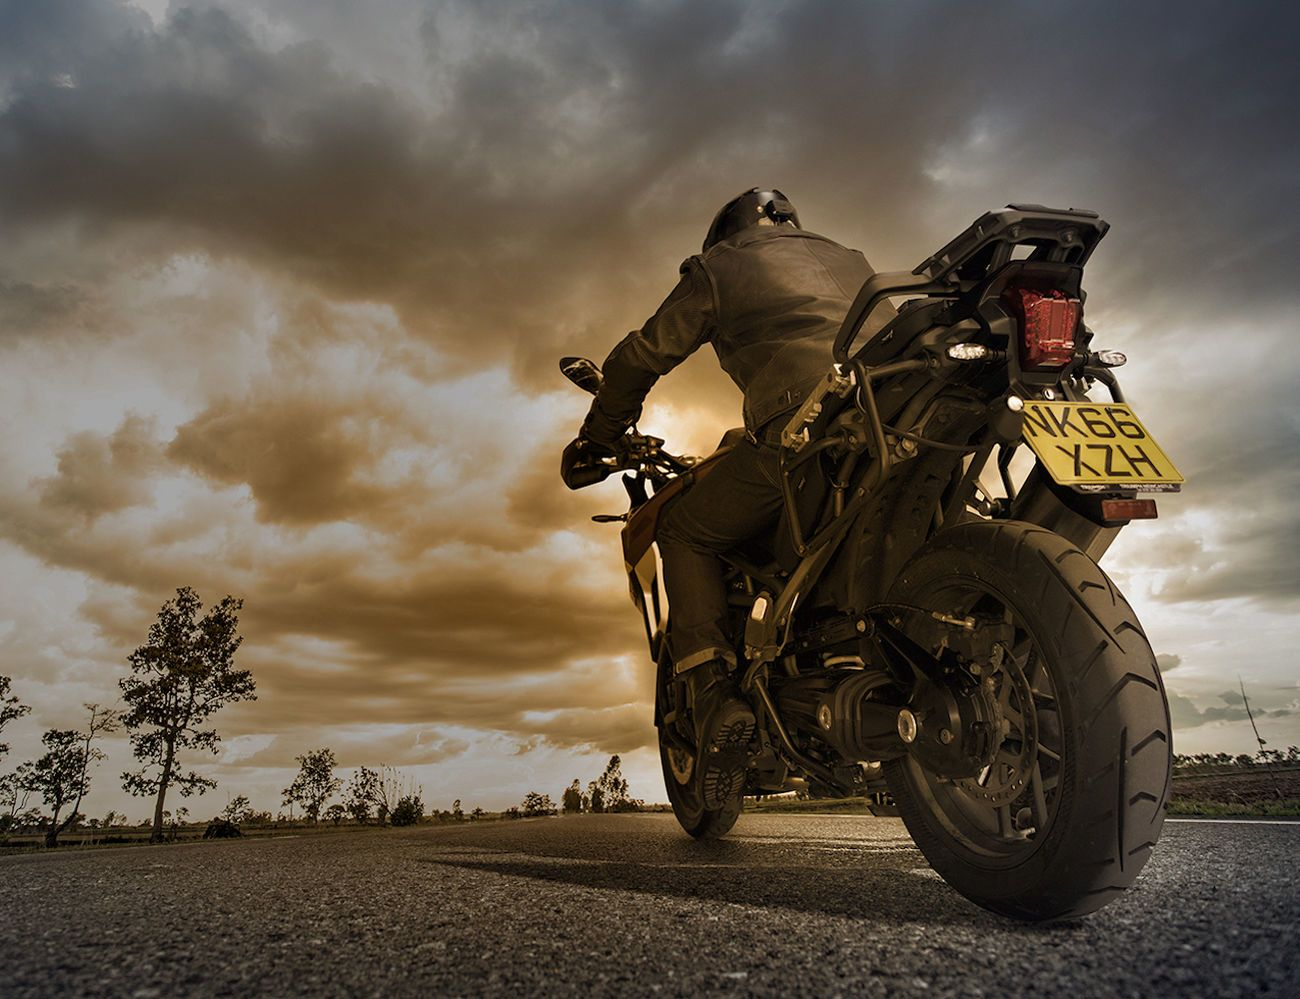 ZONA Rear-View Motorcycle System